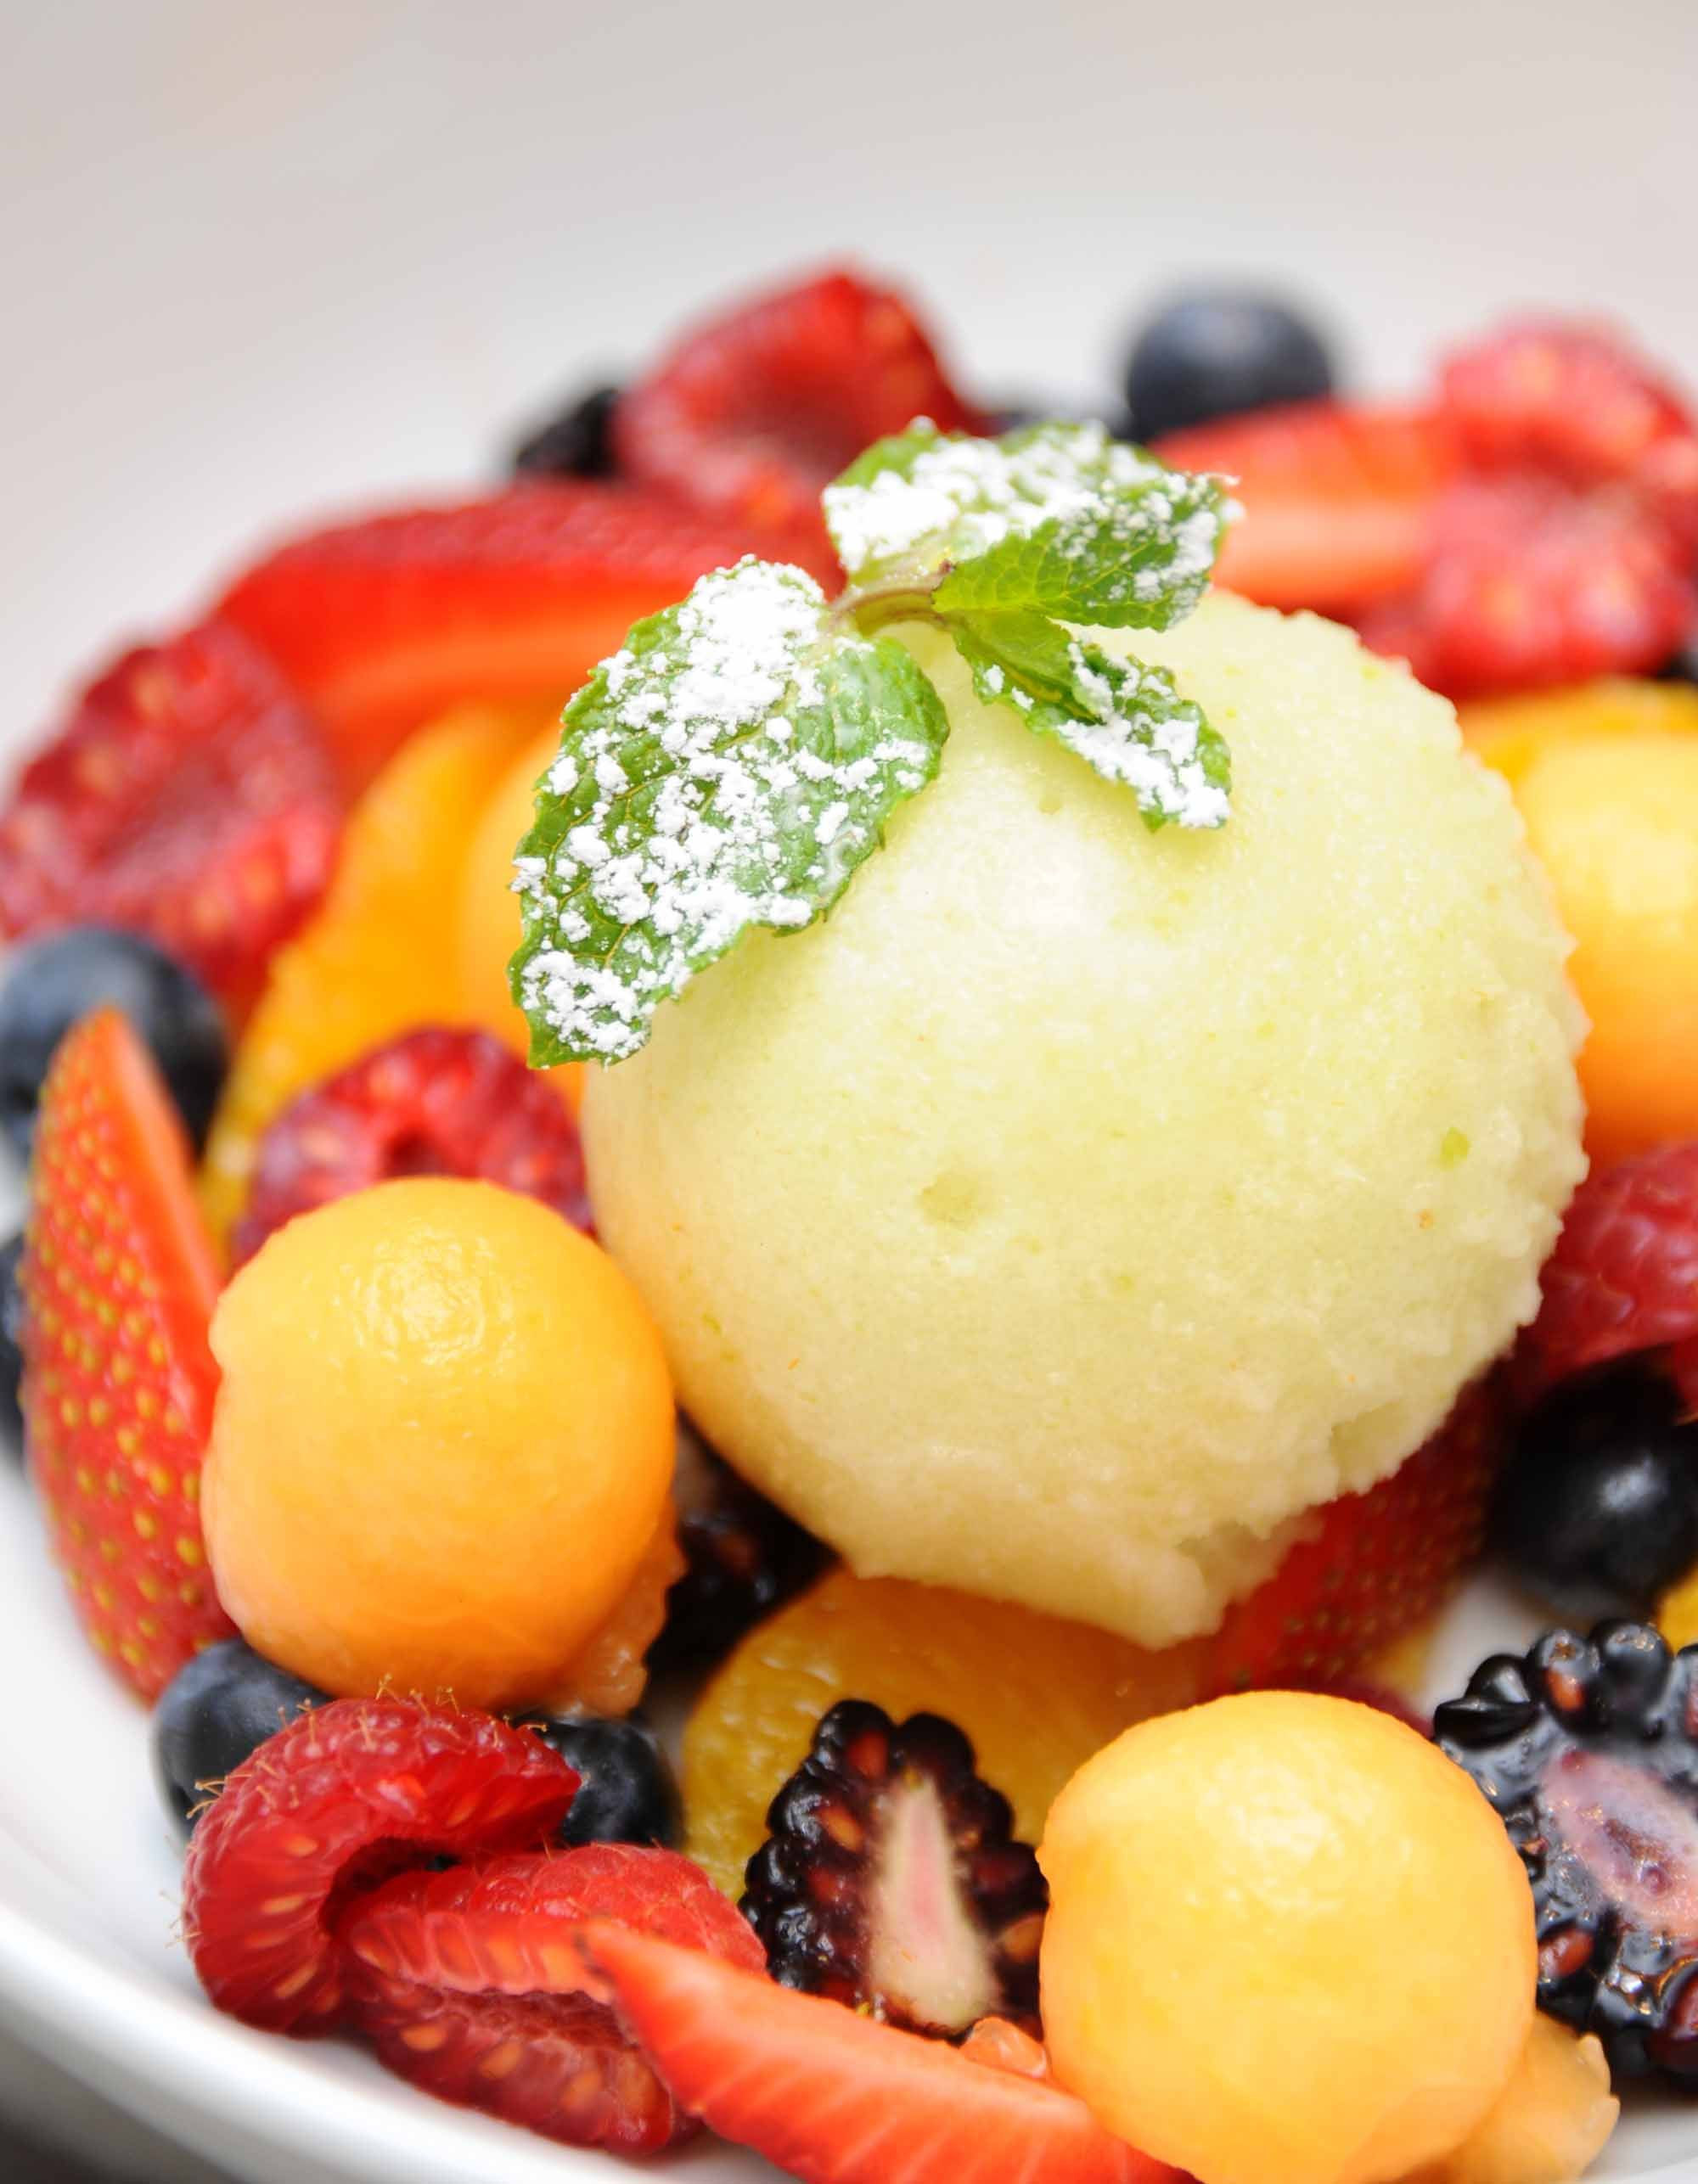 Healthy Desserts Nyc  Celebrate Healthy Desserts With This Green Apple Sorbet